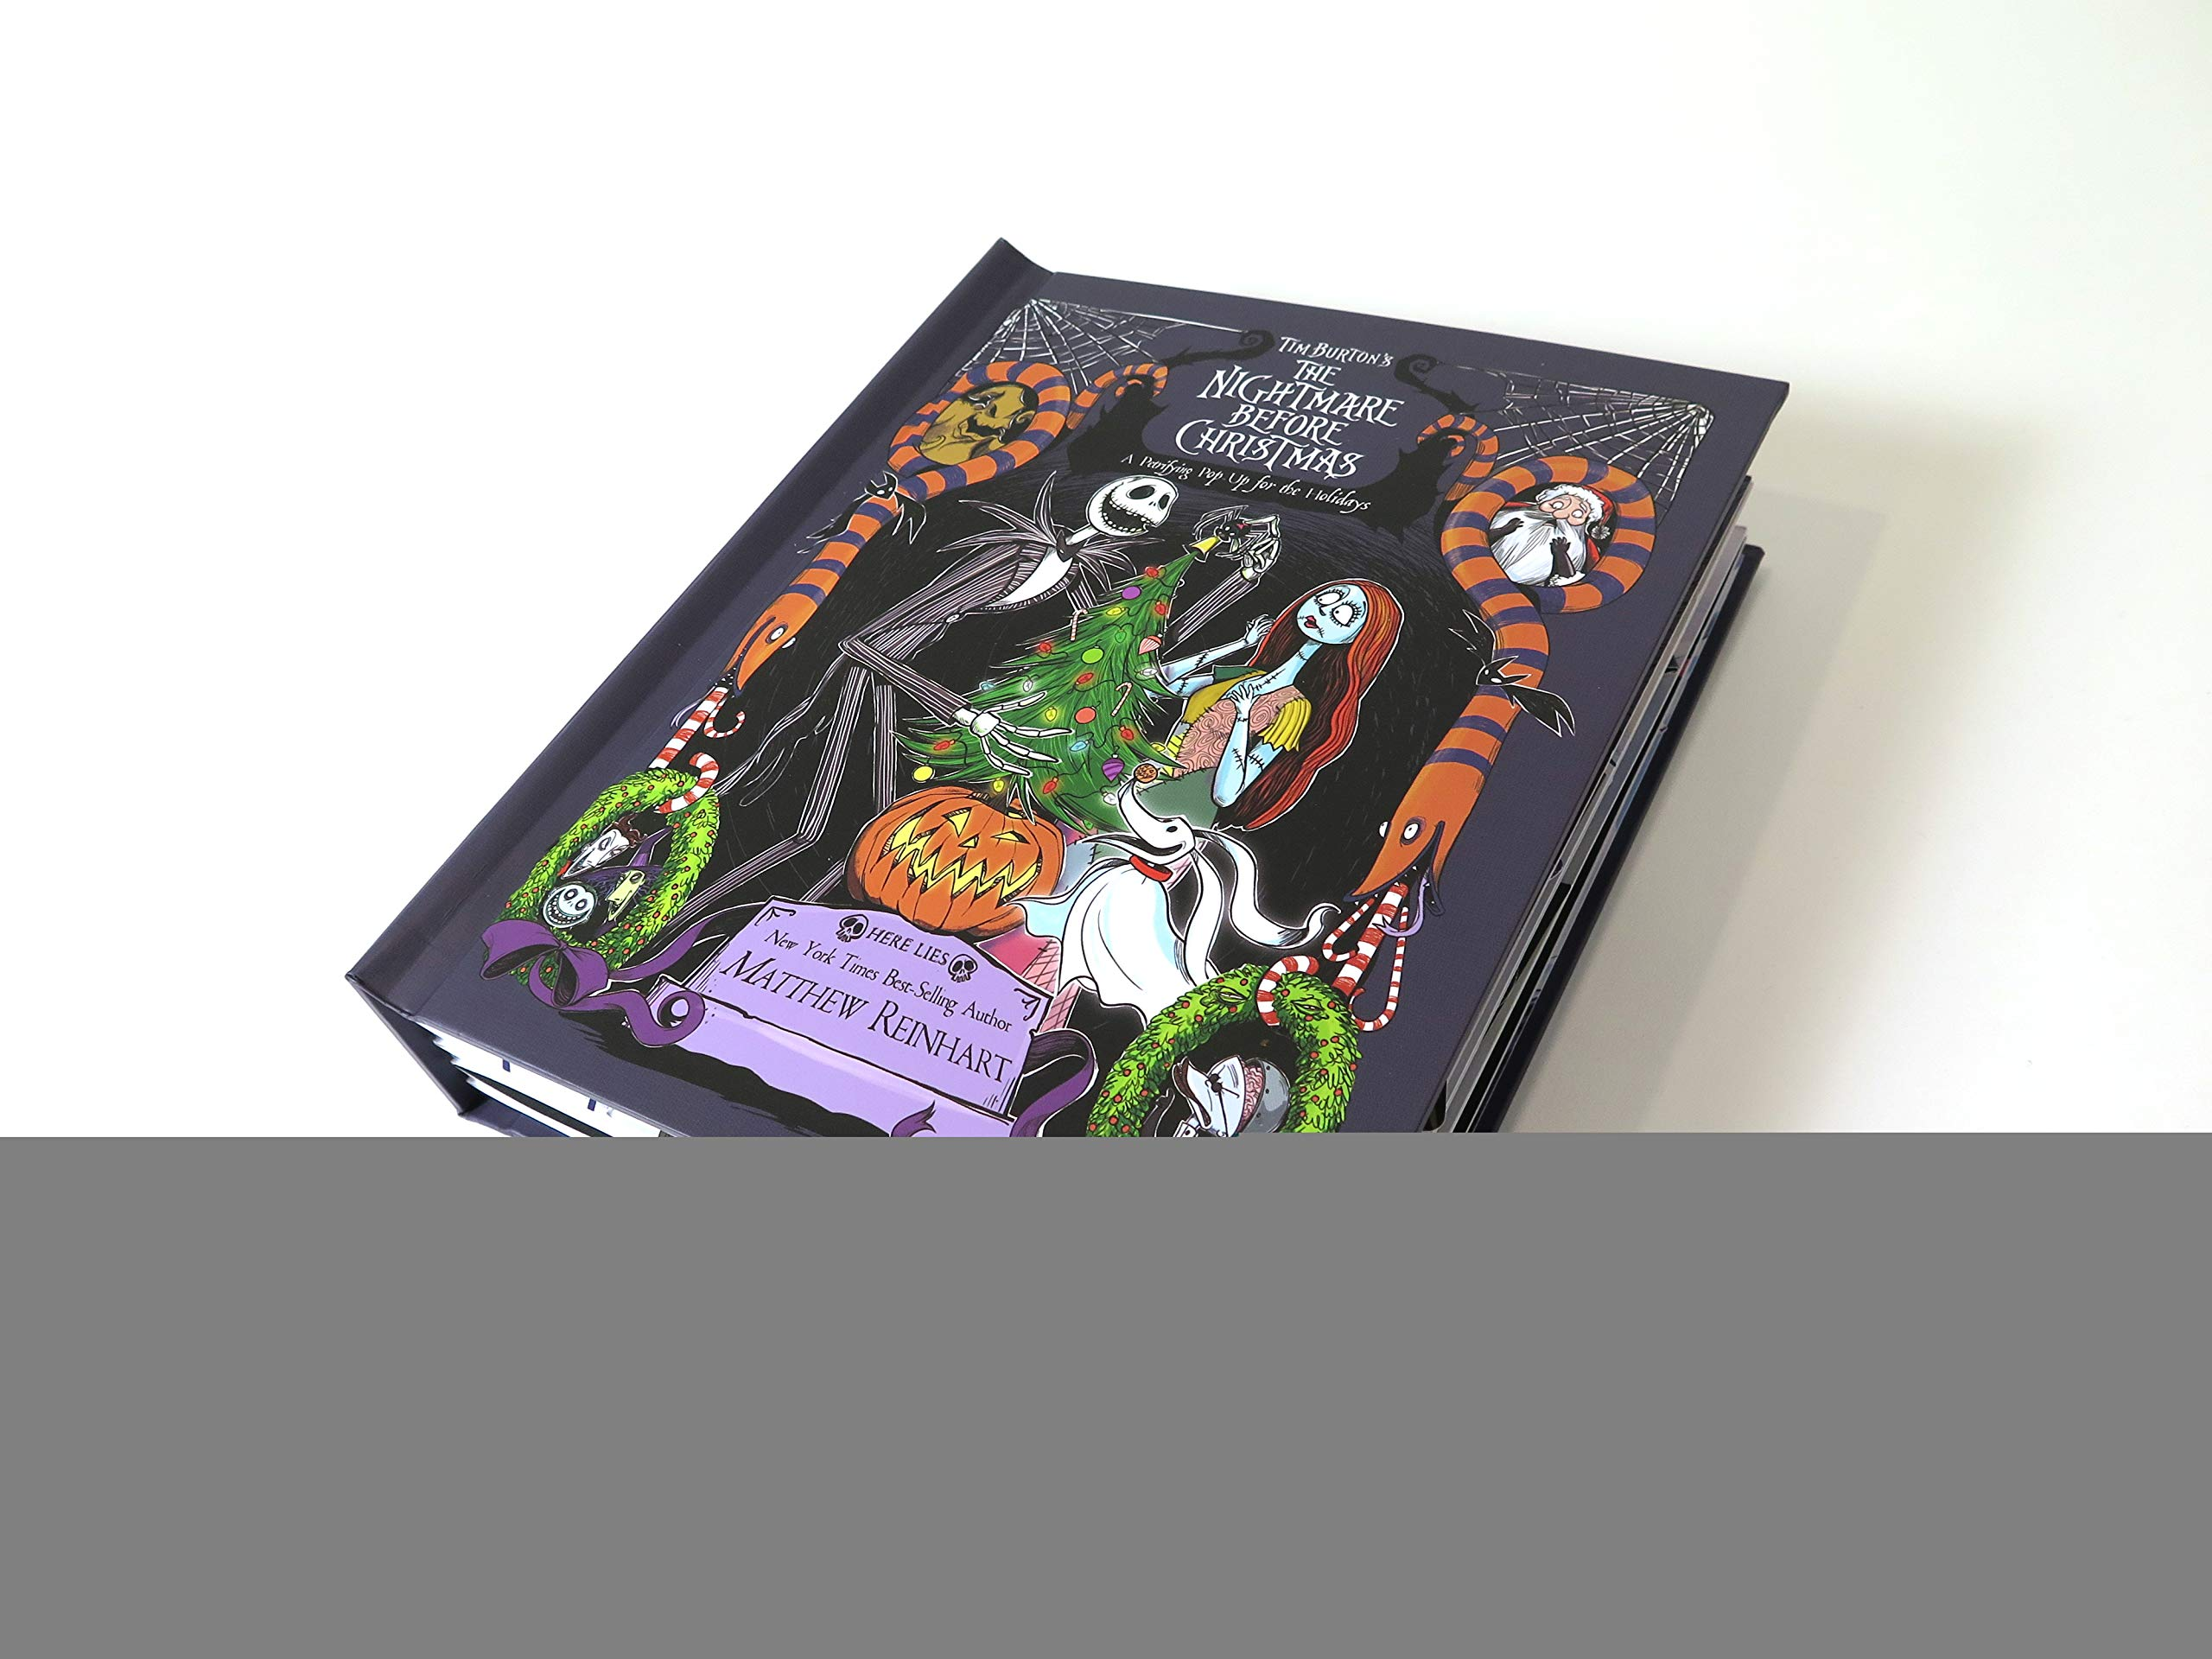 Amazon.com: Tim Burton\'s The Nightmare Before Christmas Pop-Up: A ...